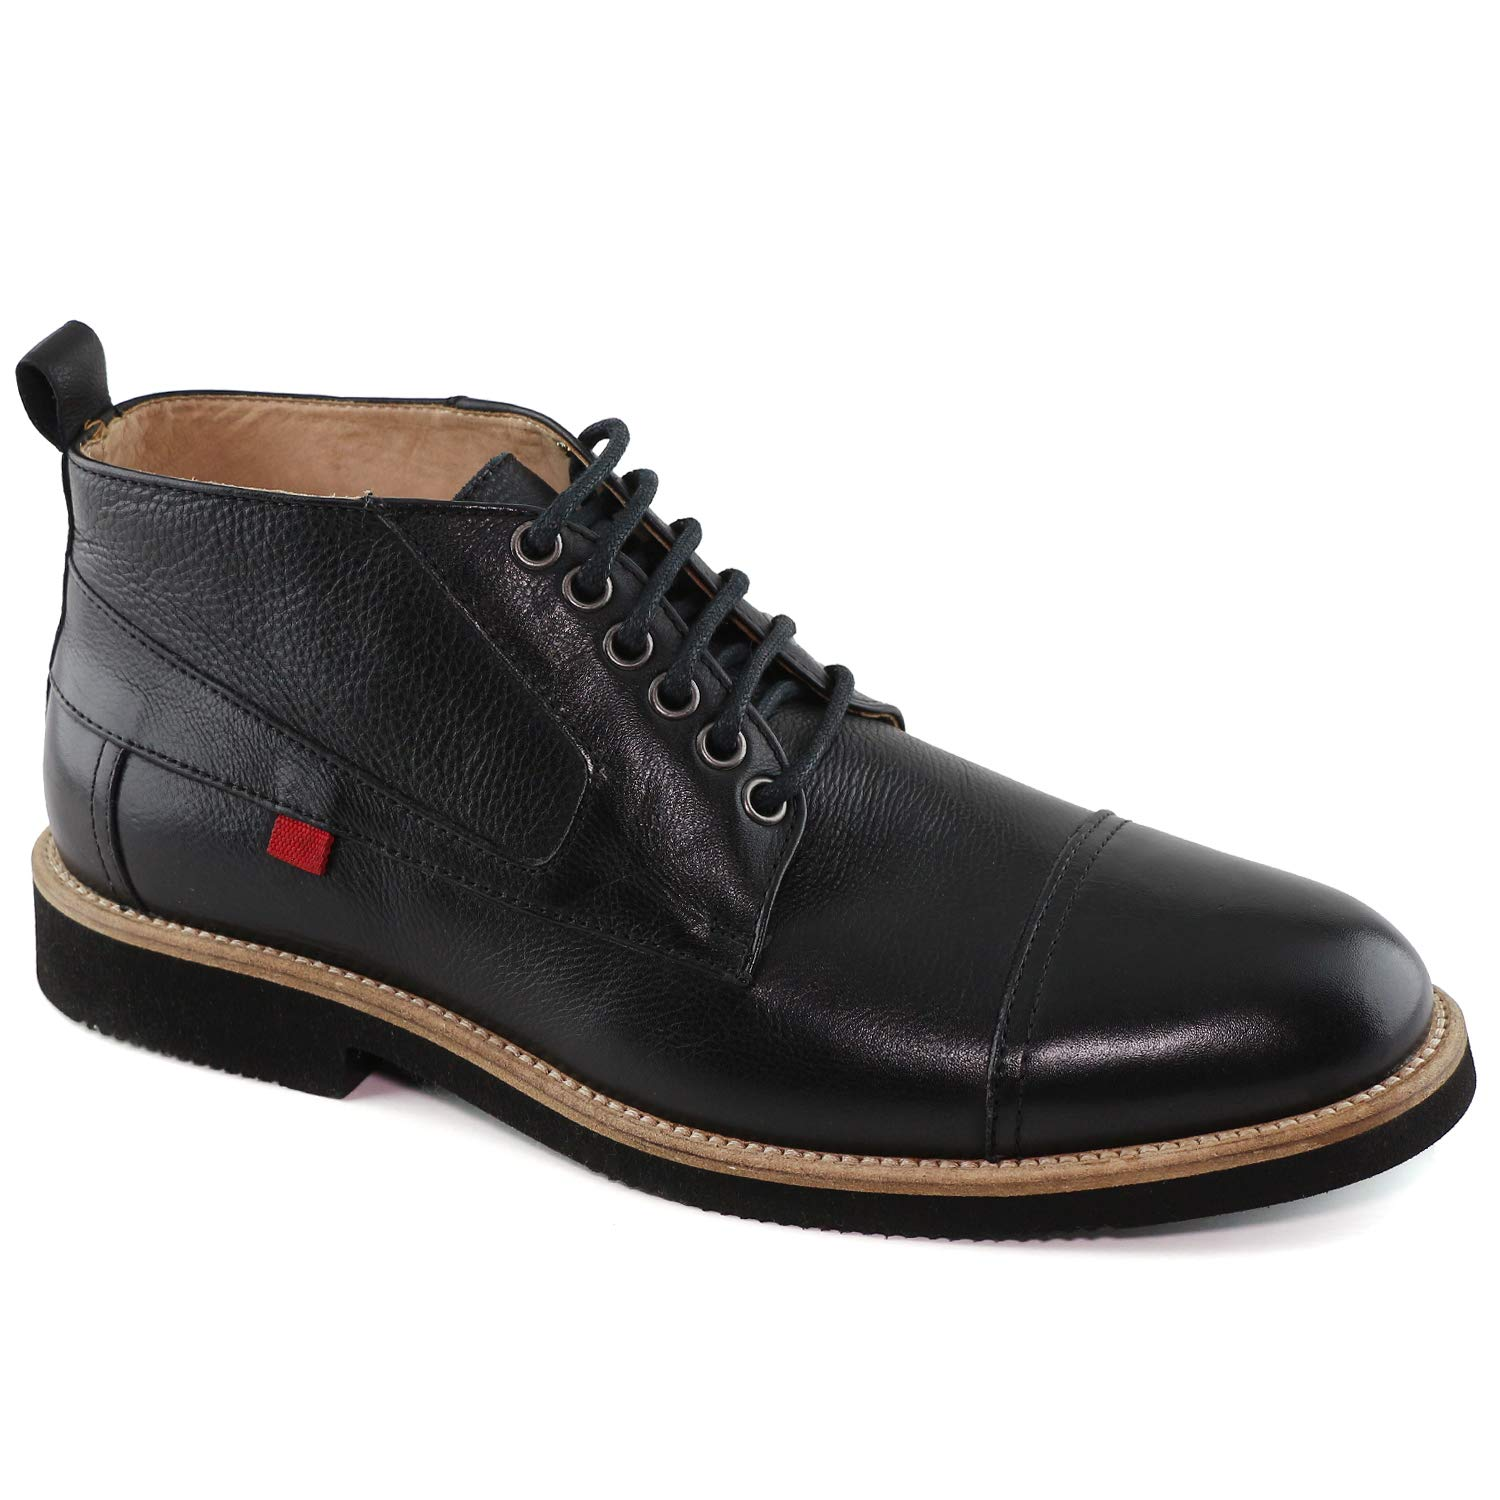 Mens Genuine Leather Made in Brazil Williamsburg Boot